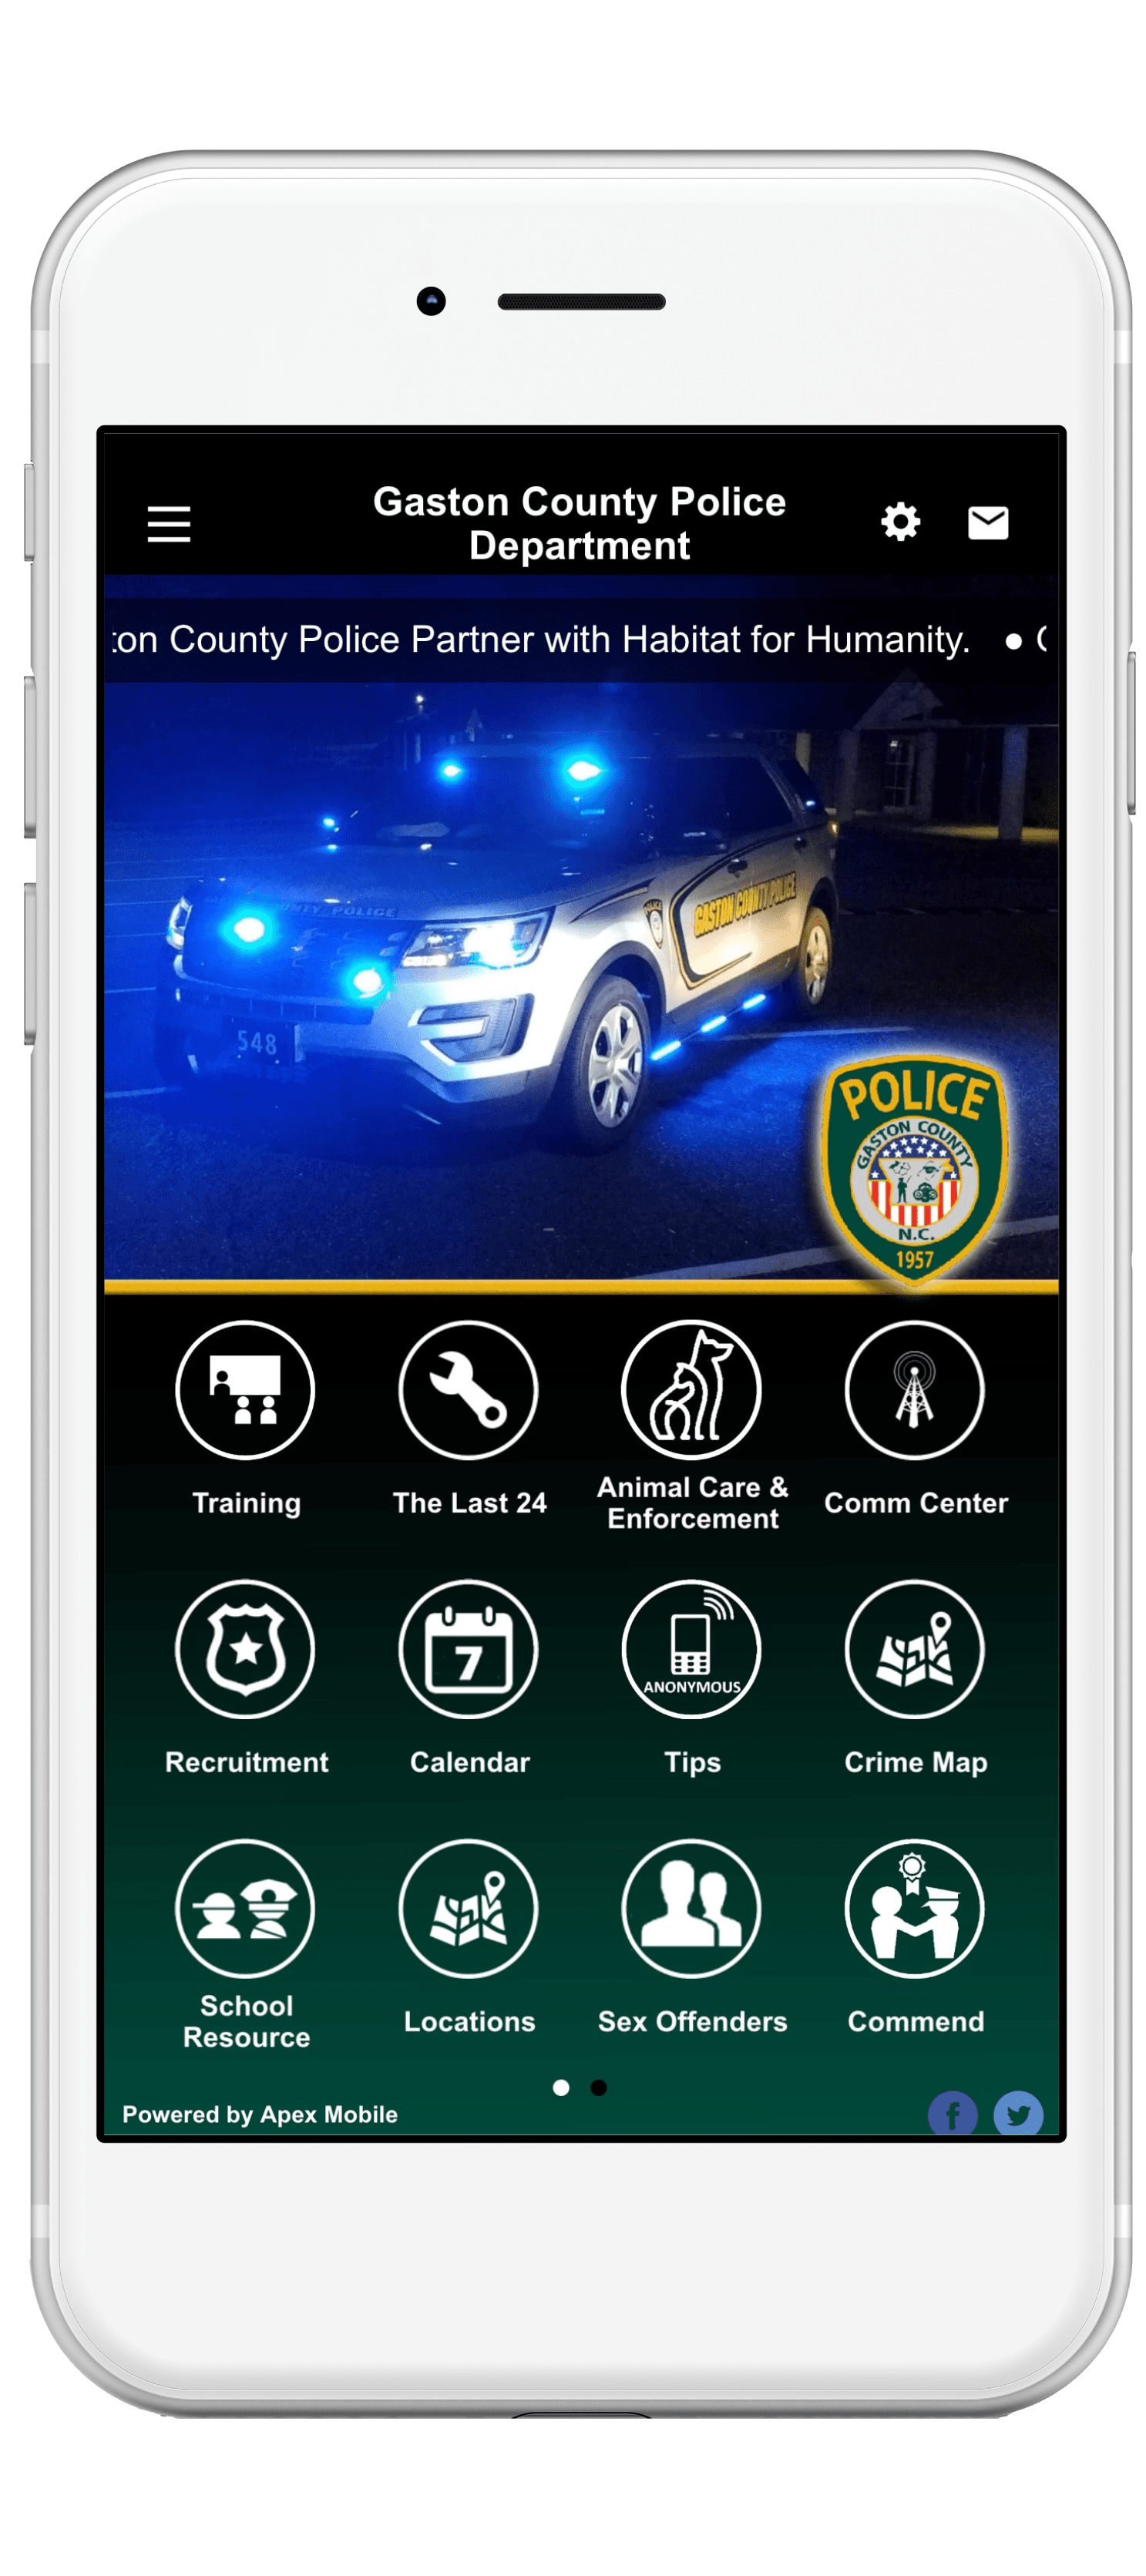 Gaston County Police Department - Apex Mobile Apps